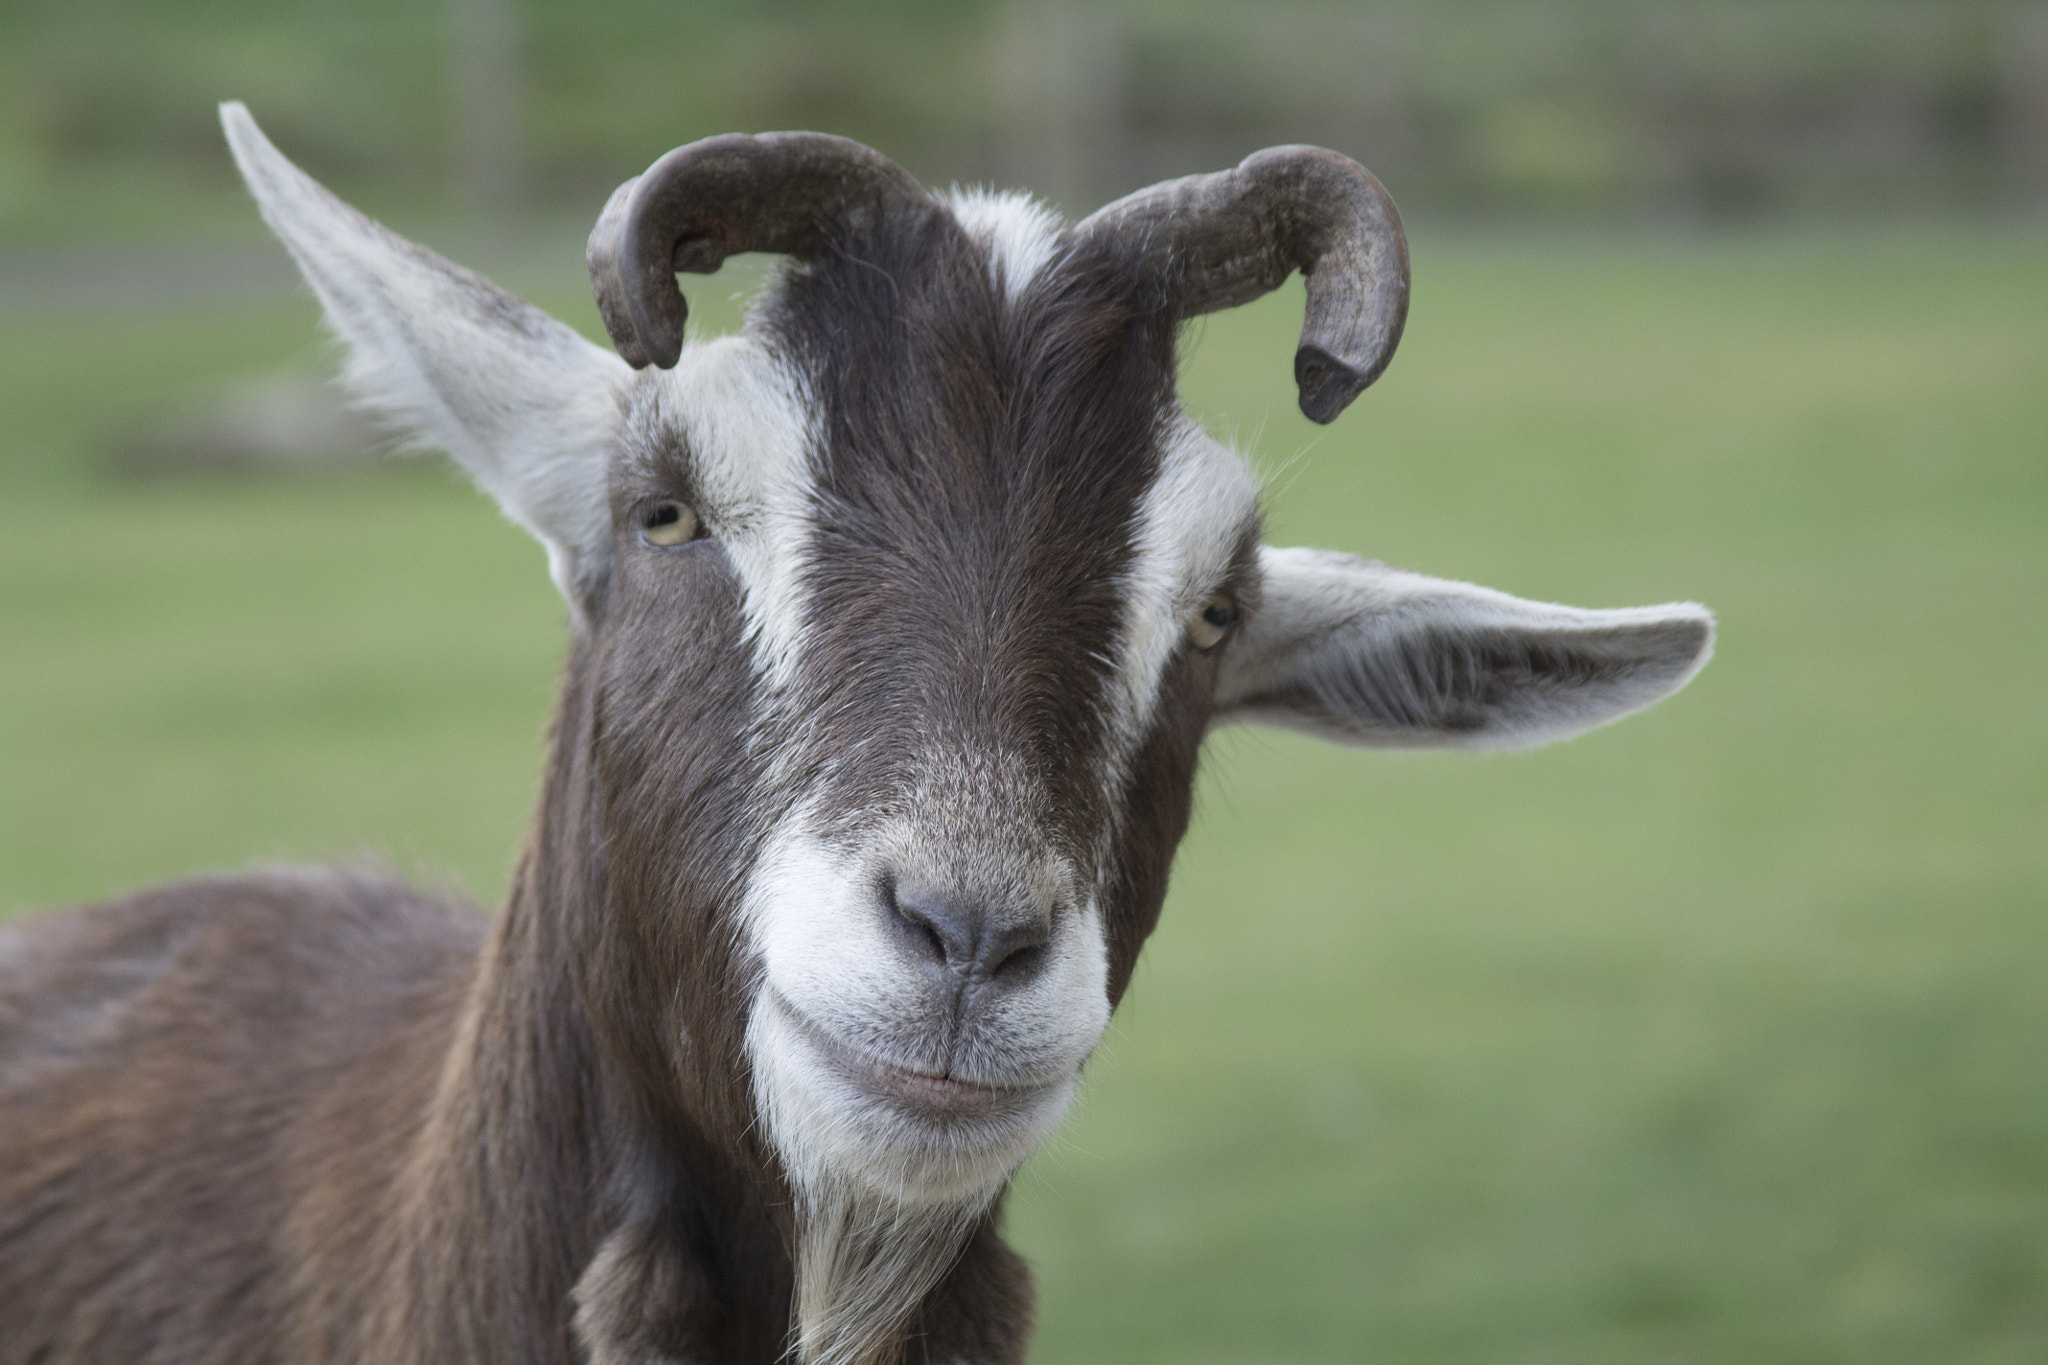 Photograph A Goat by Darren Smith on 500px